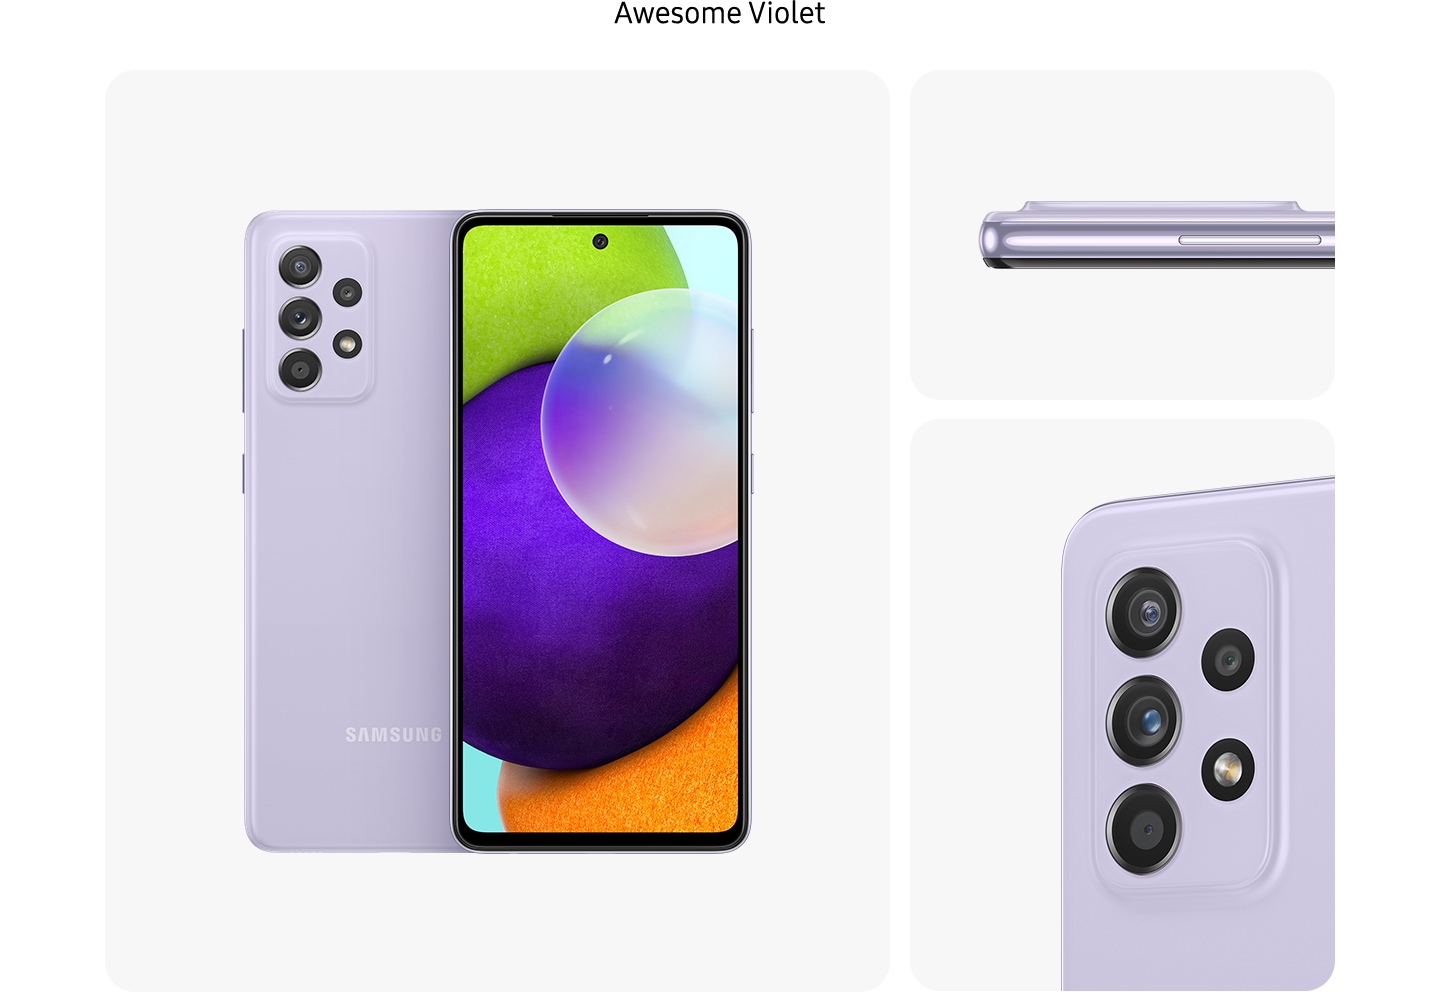 Galaxy A52 in Awesome Violet, seen from multiple angles to show the design: rear, front, side and close-up on the rear camera.